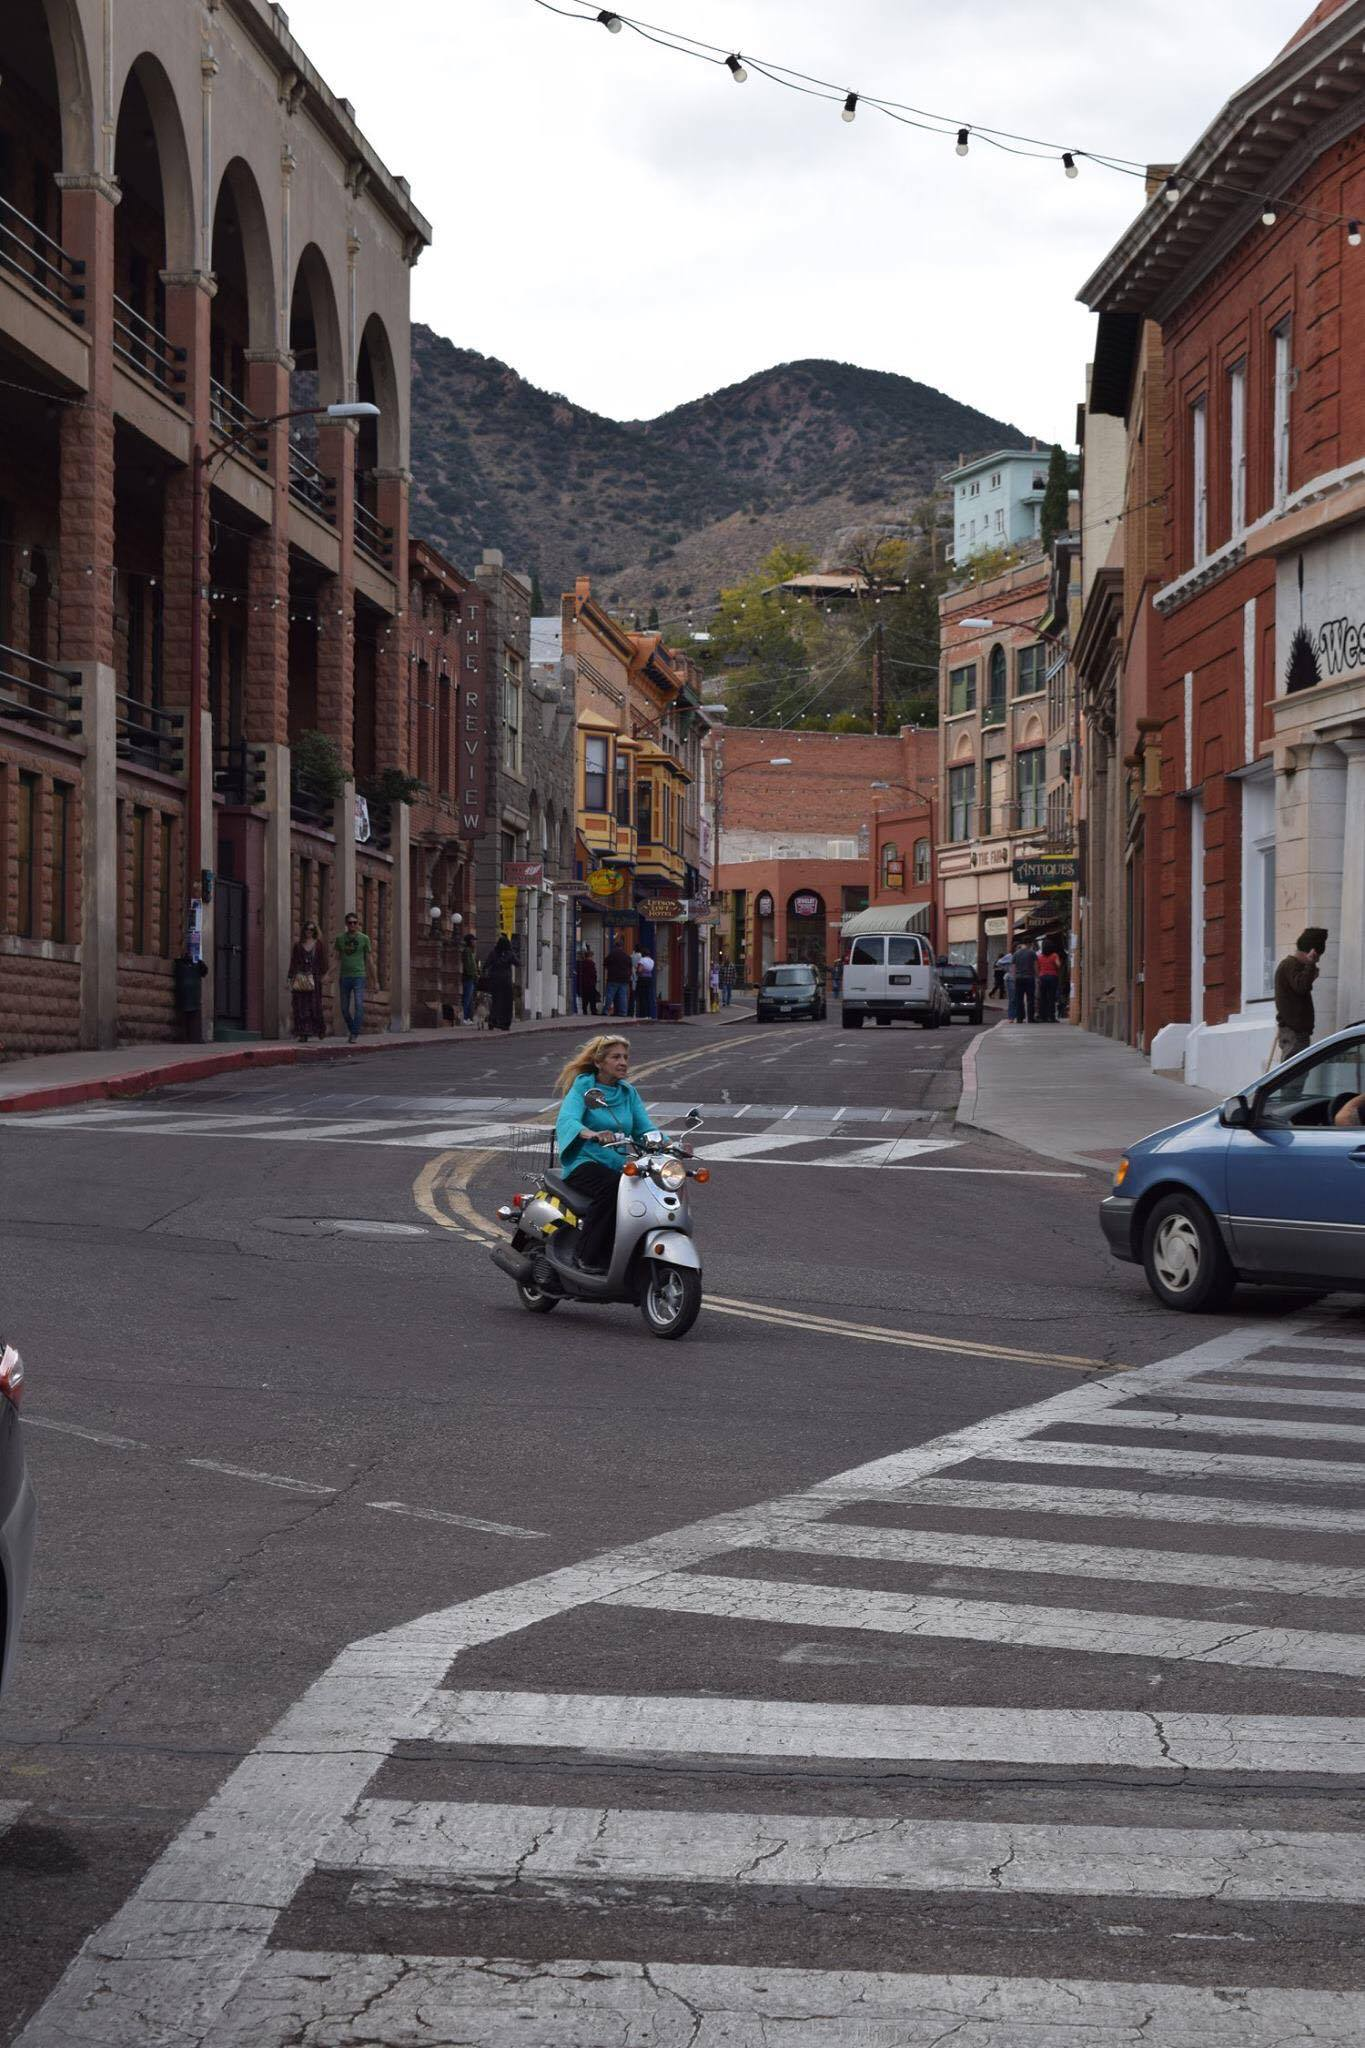 Scooter rider in downtown Old Bisbee